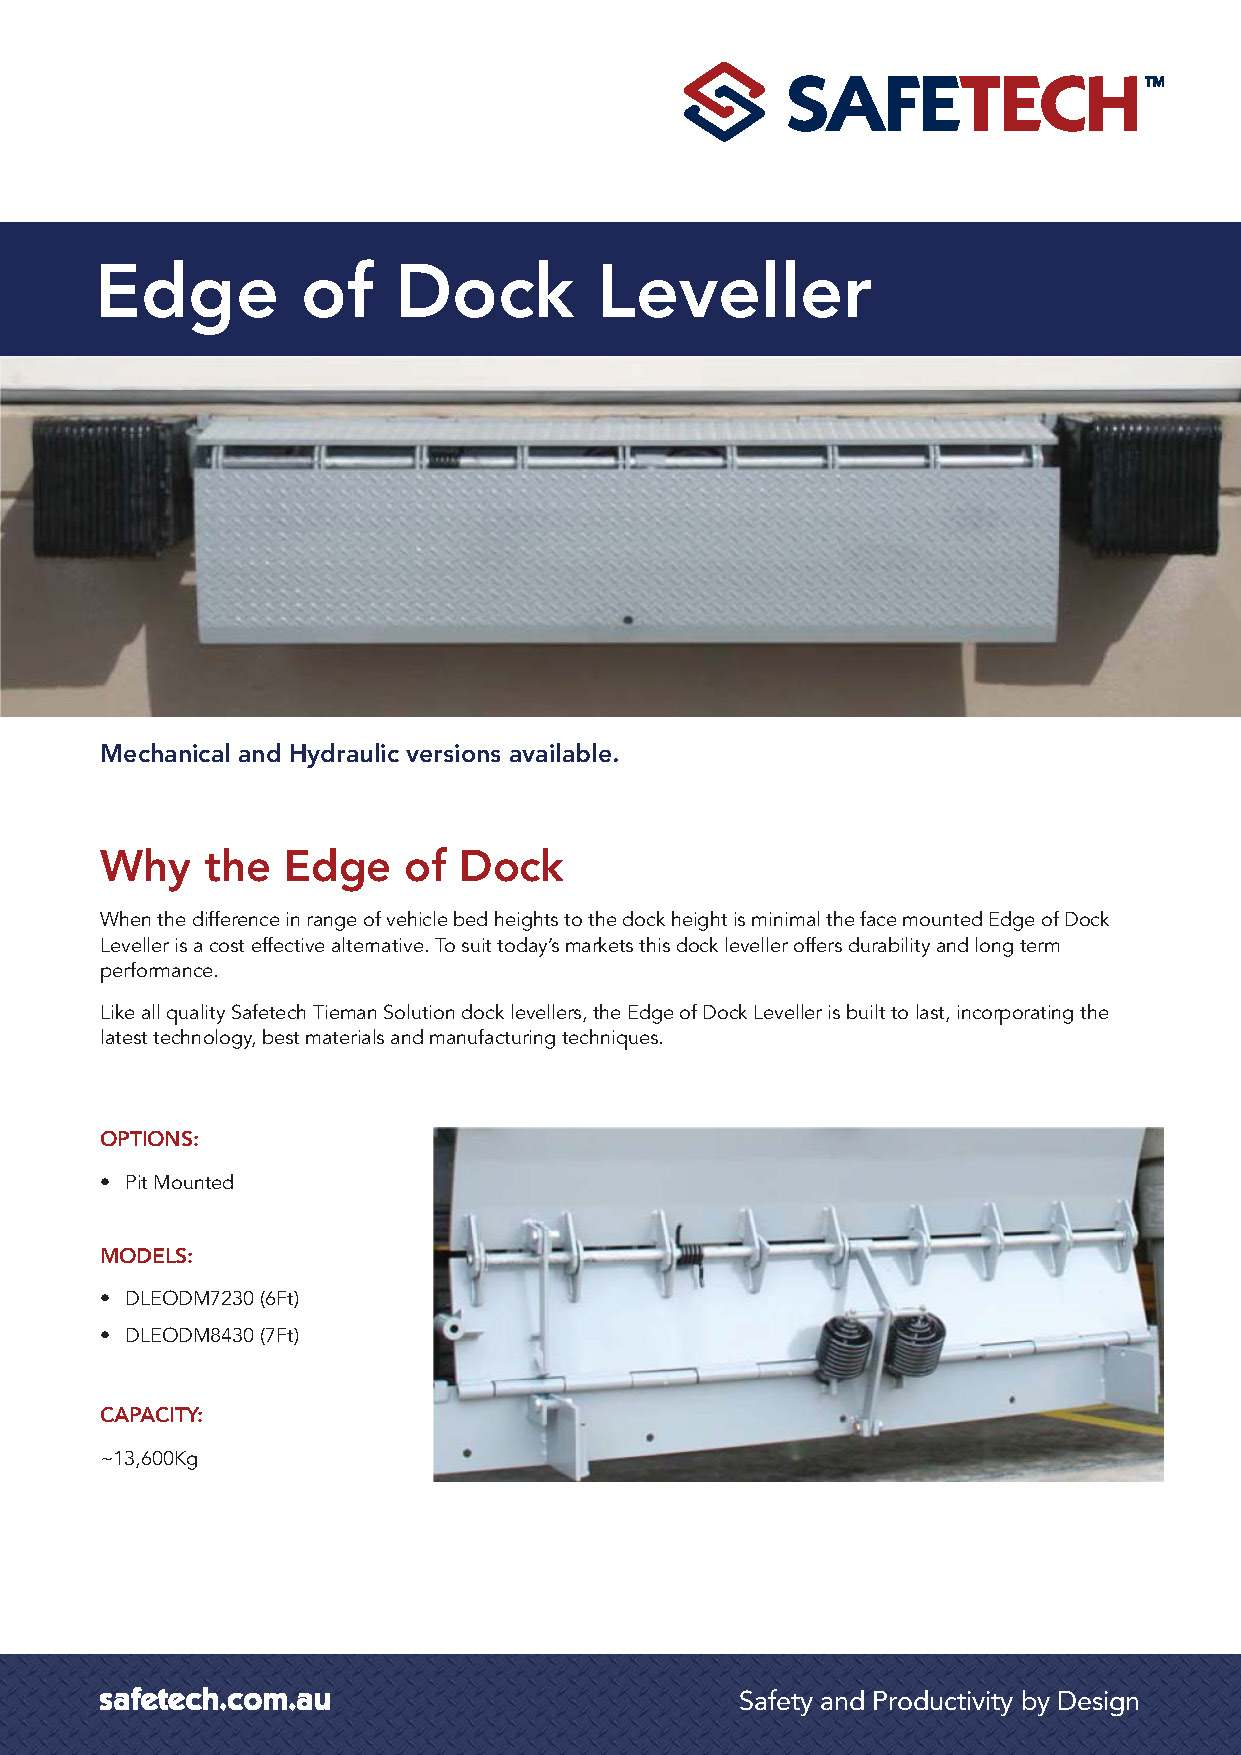 Safetech-EdgeofDock-A4_V1_Page_1